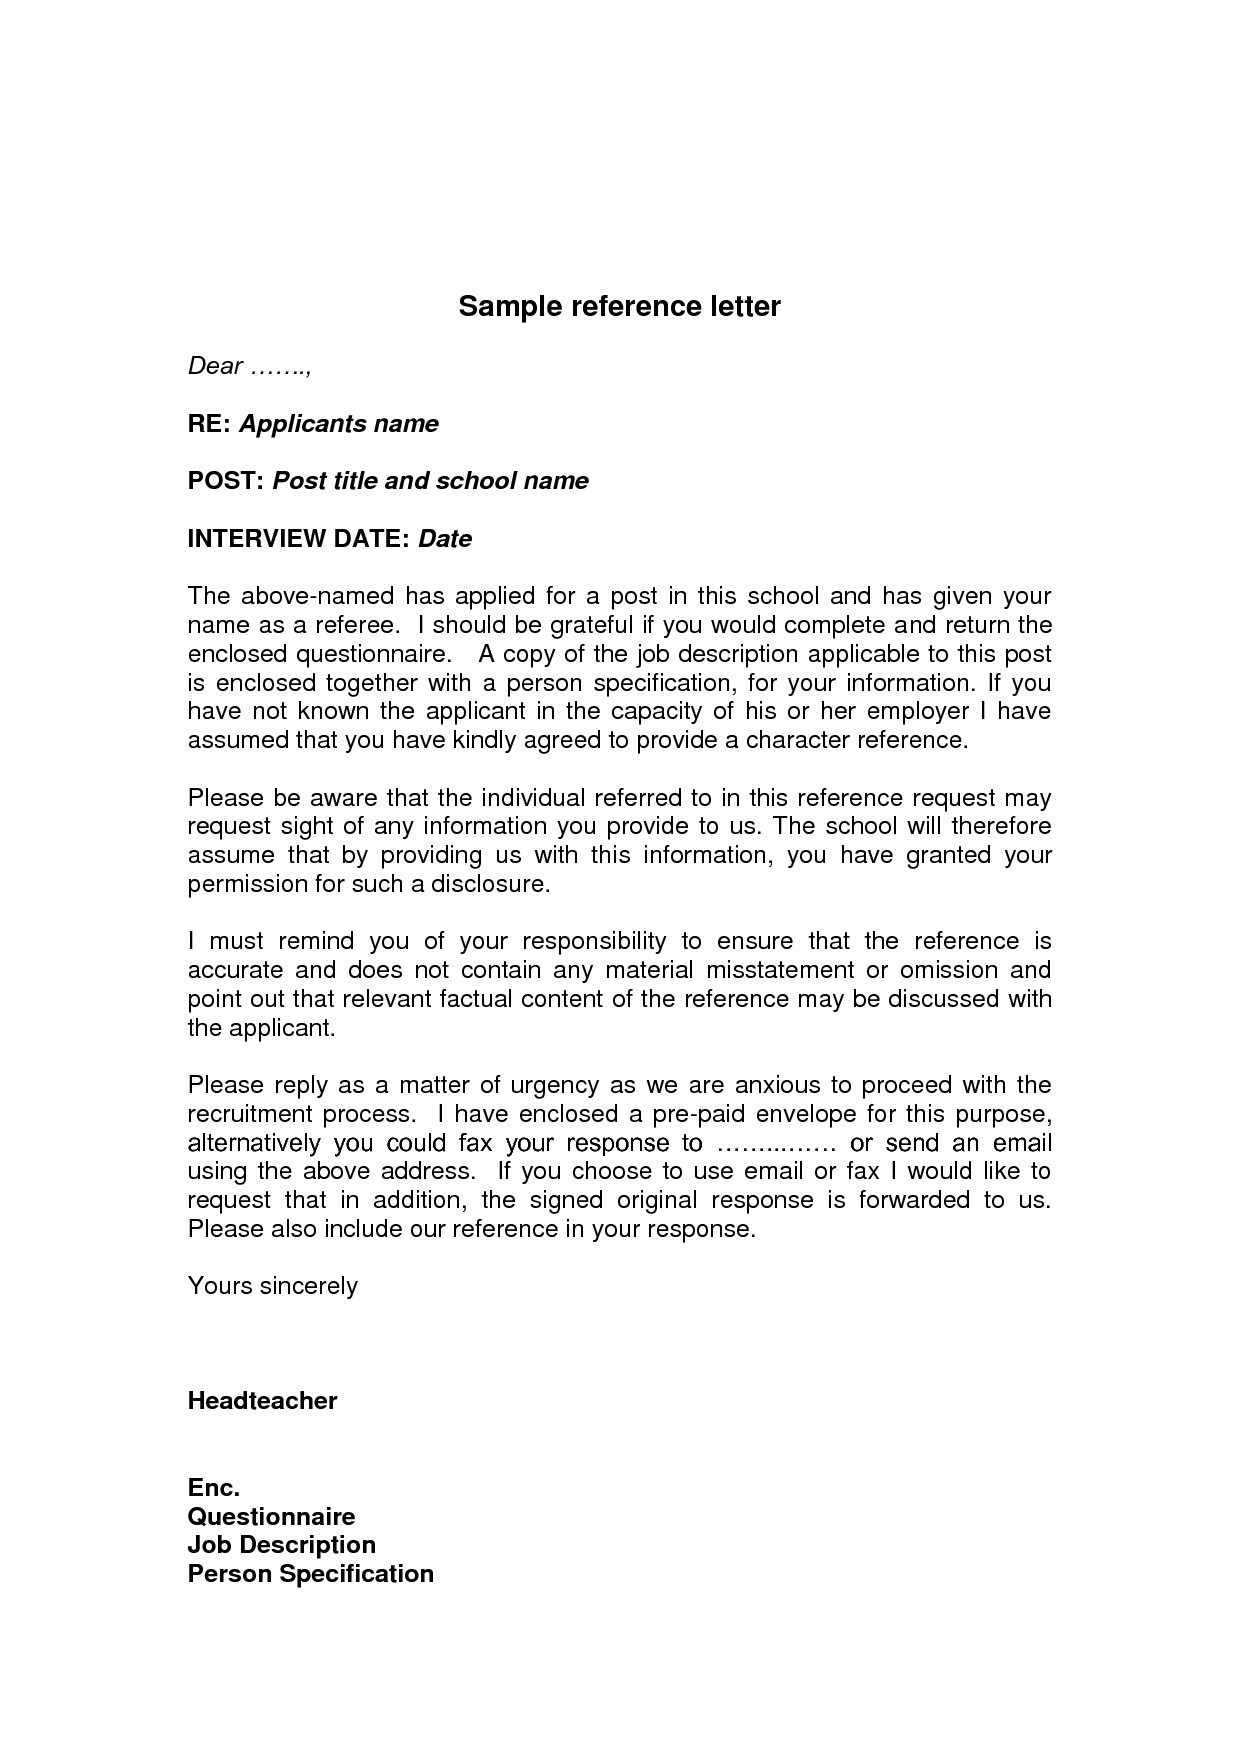 Company Business Reference Letter Template - Sample Personalcharacter Reference Letter Created Using Ms Word